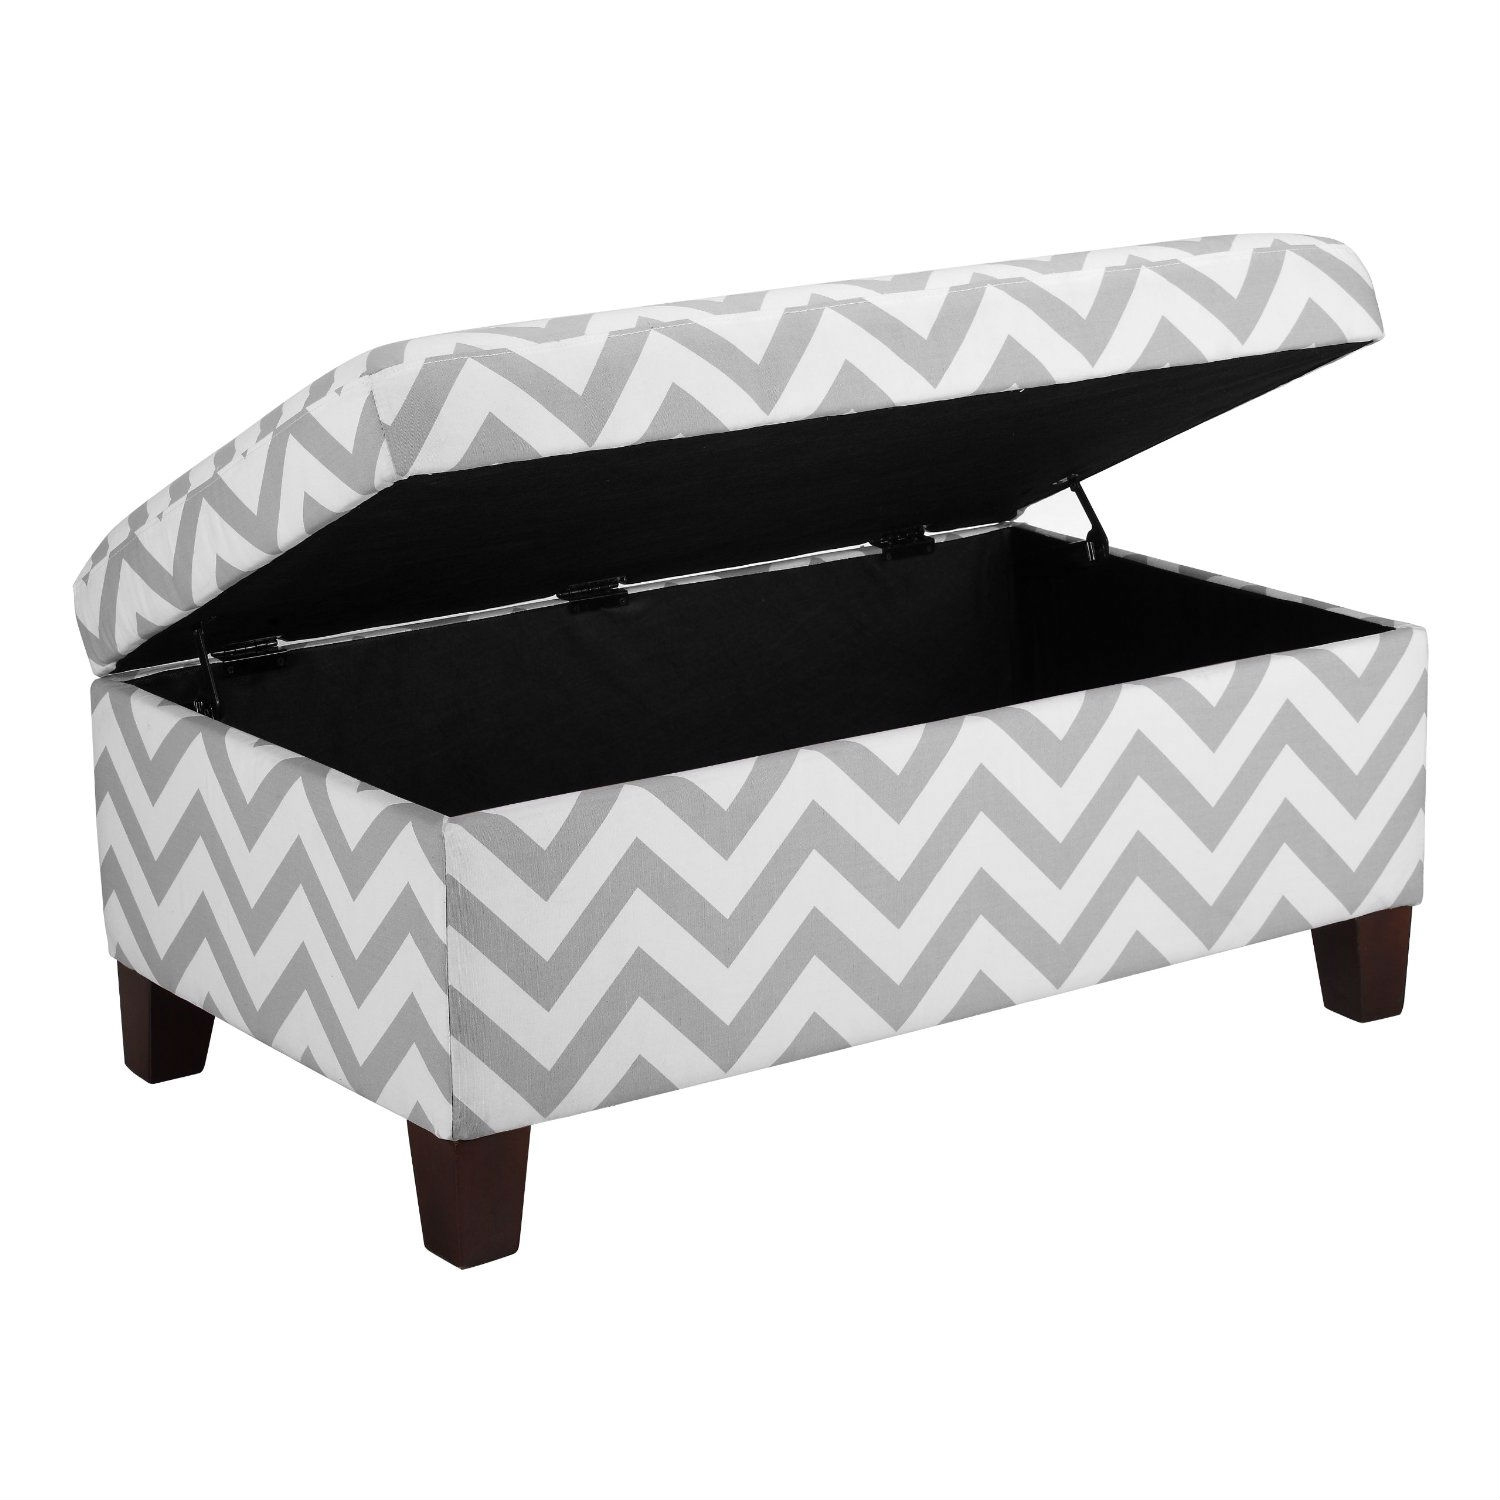 Ordinaire Grey U0026 White Chevron Stripe Padded Storage Ottoman Bench